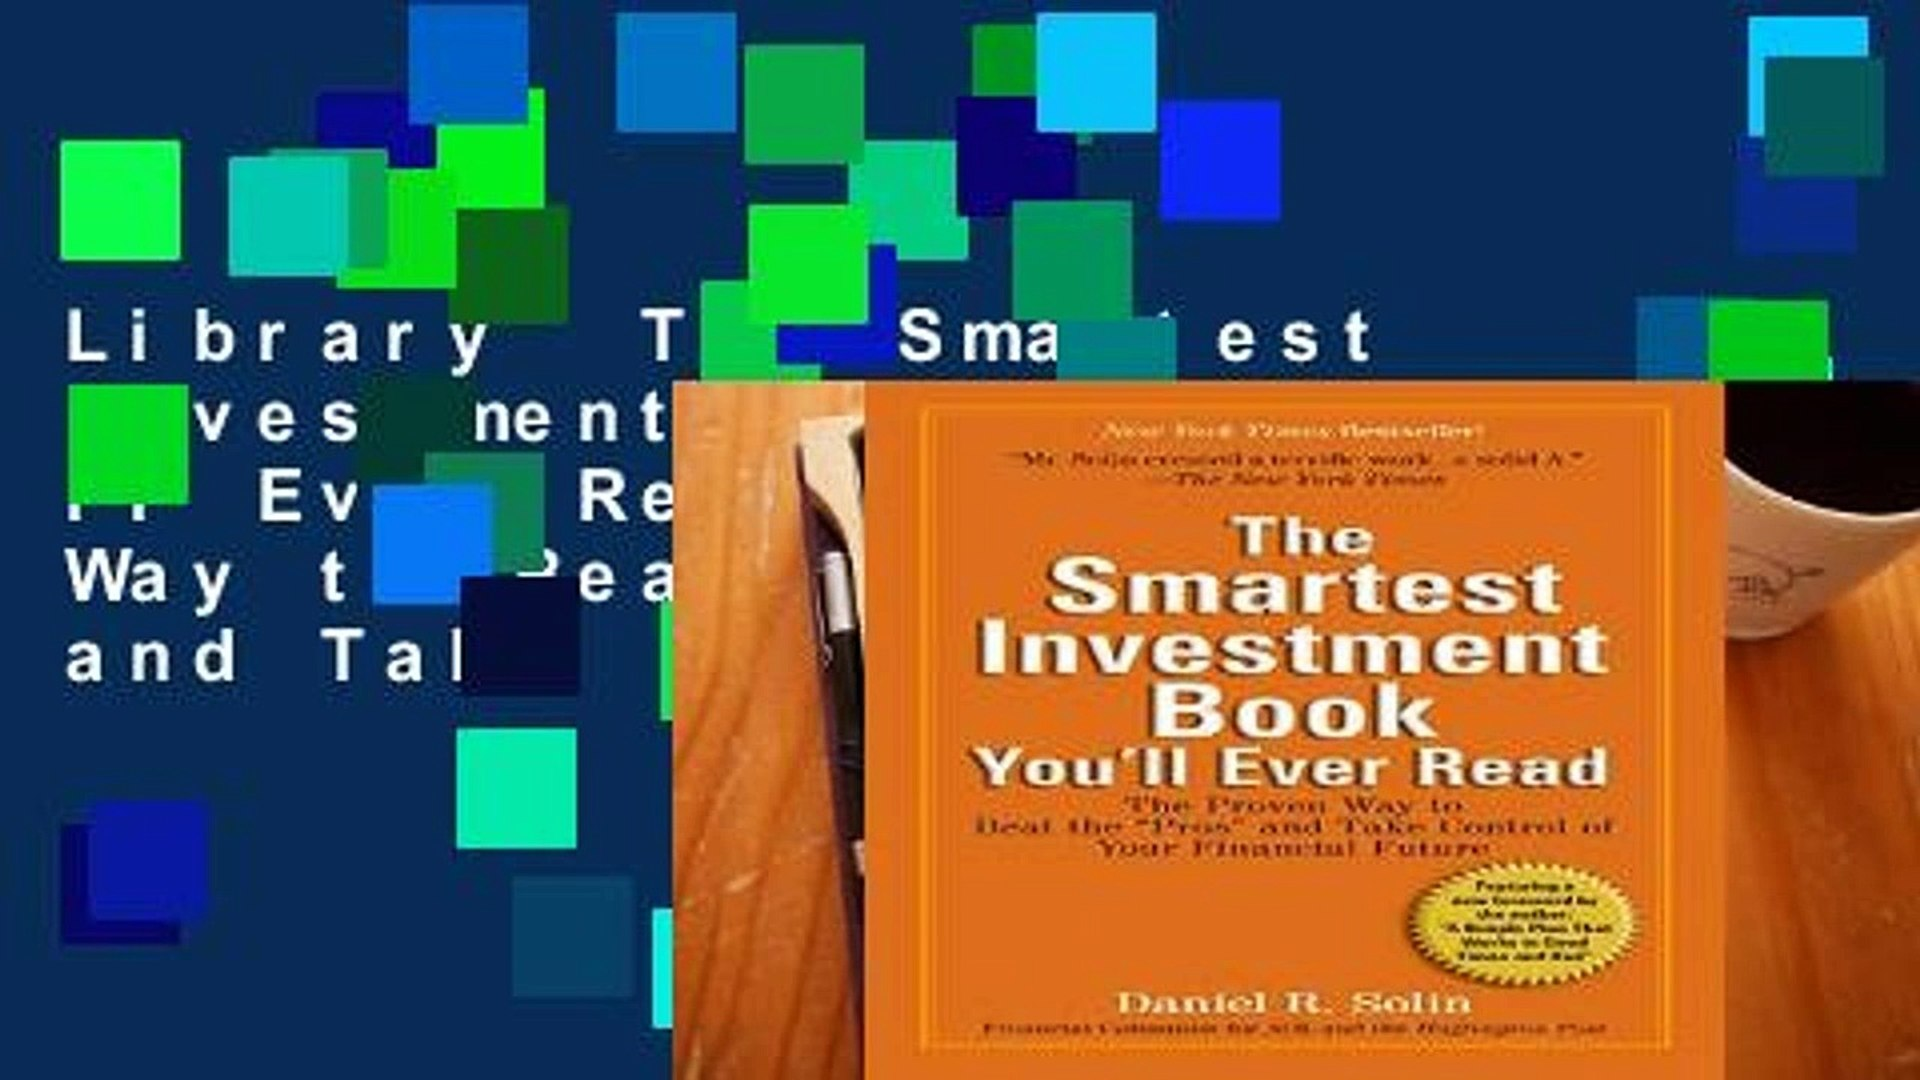 Library  The Smartest Investment Book You ll Ever Read: The Proven Way to Beat the